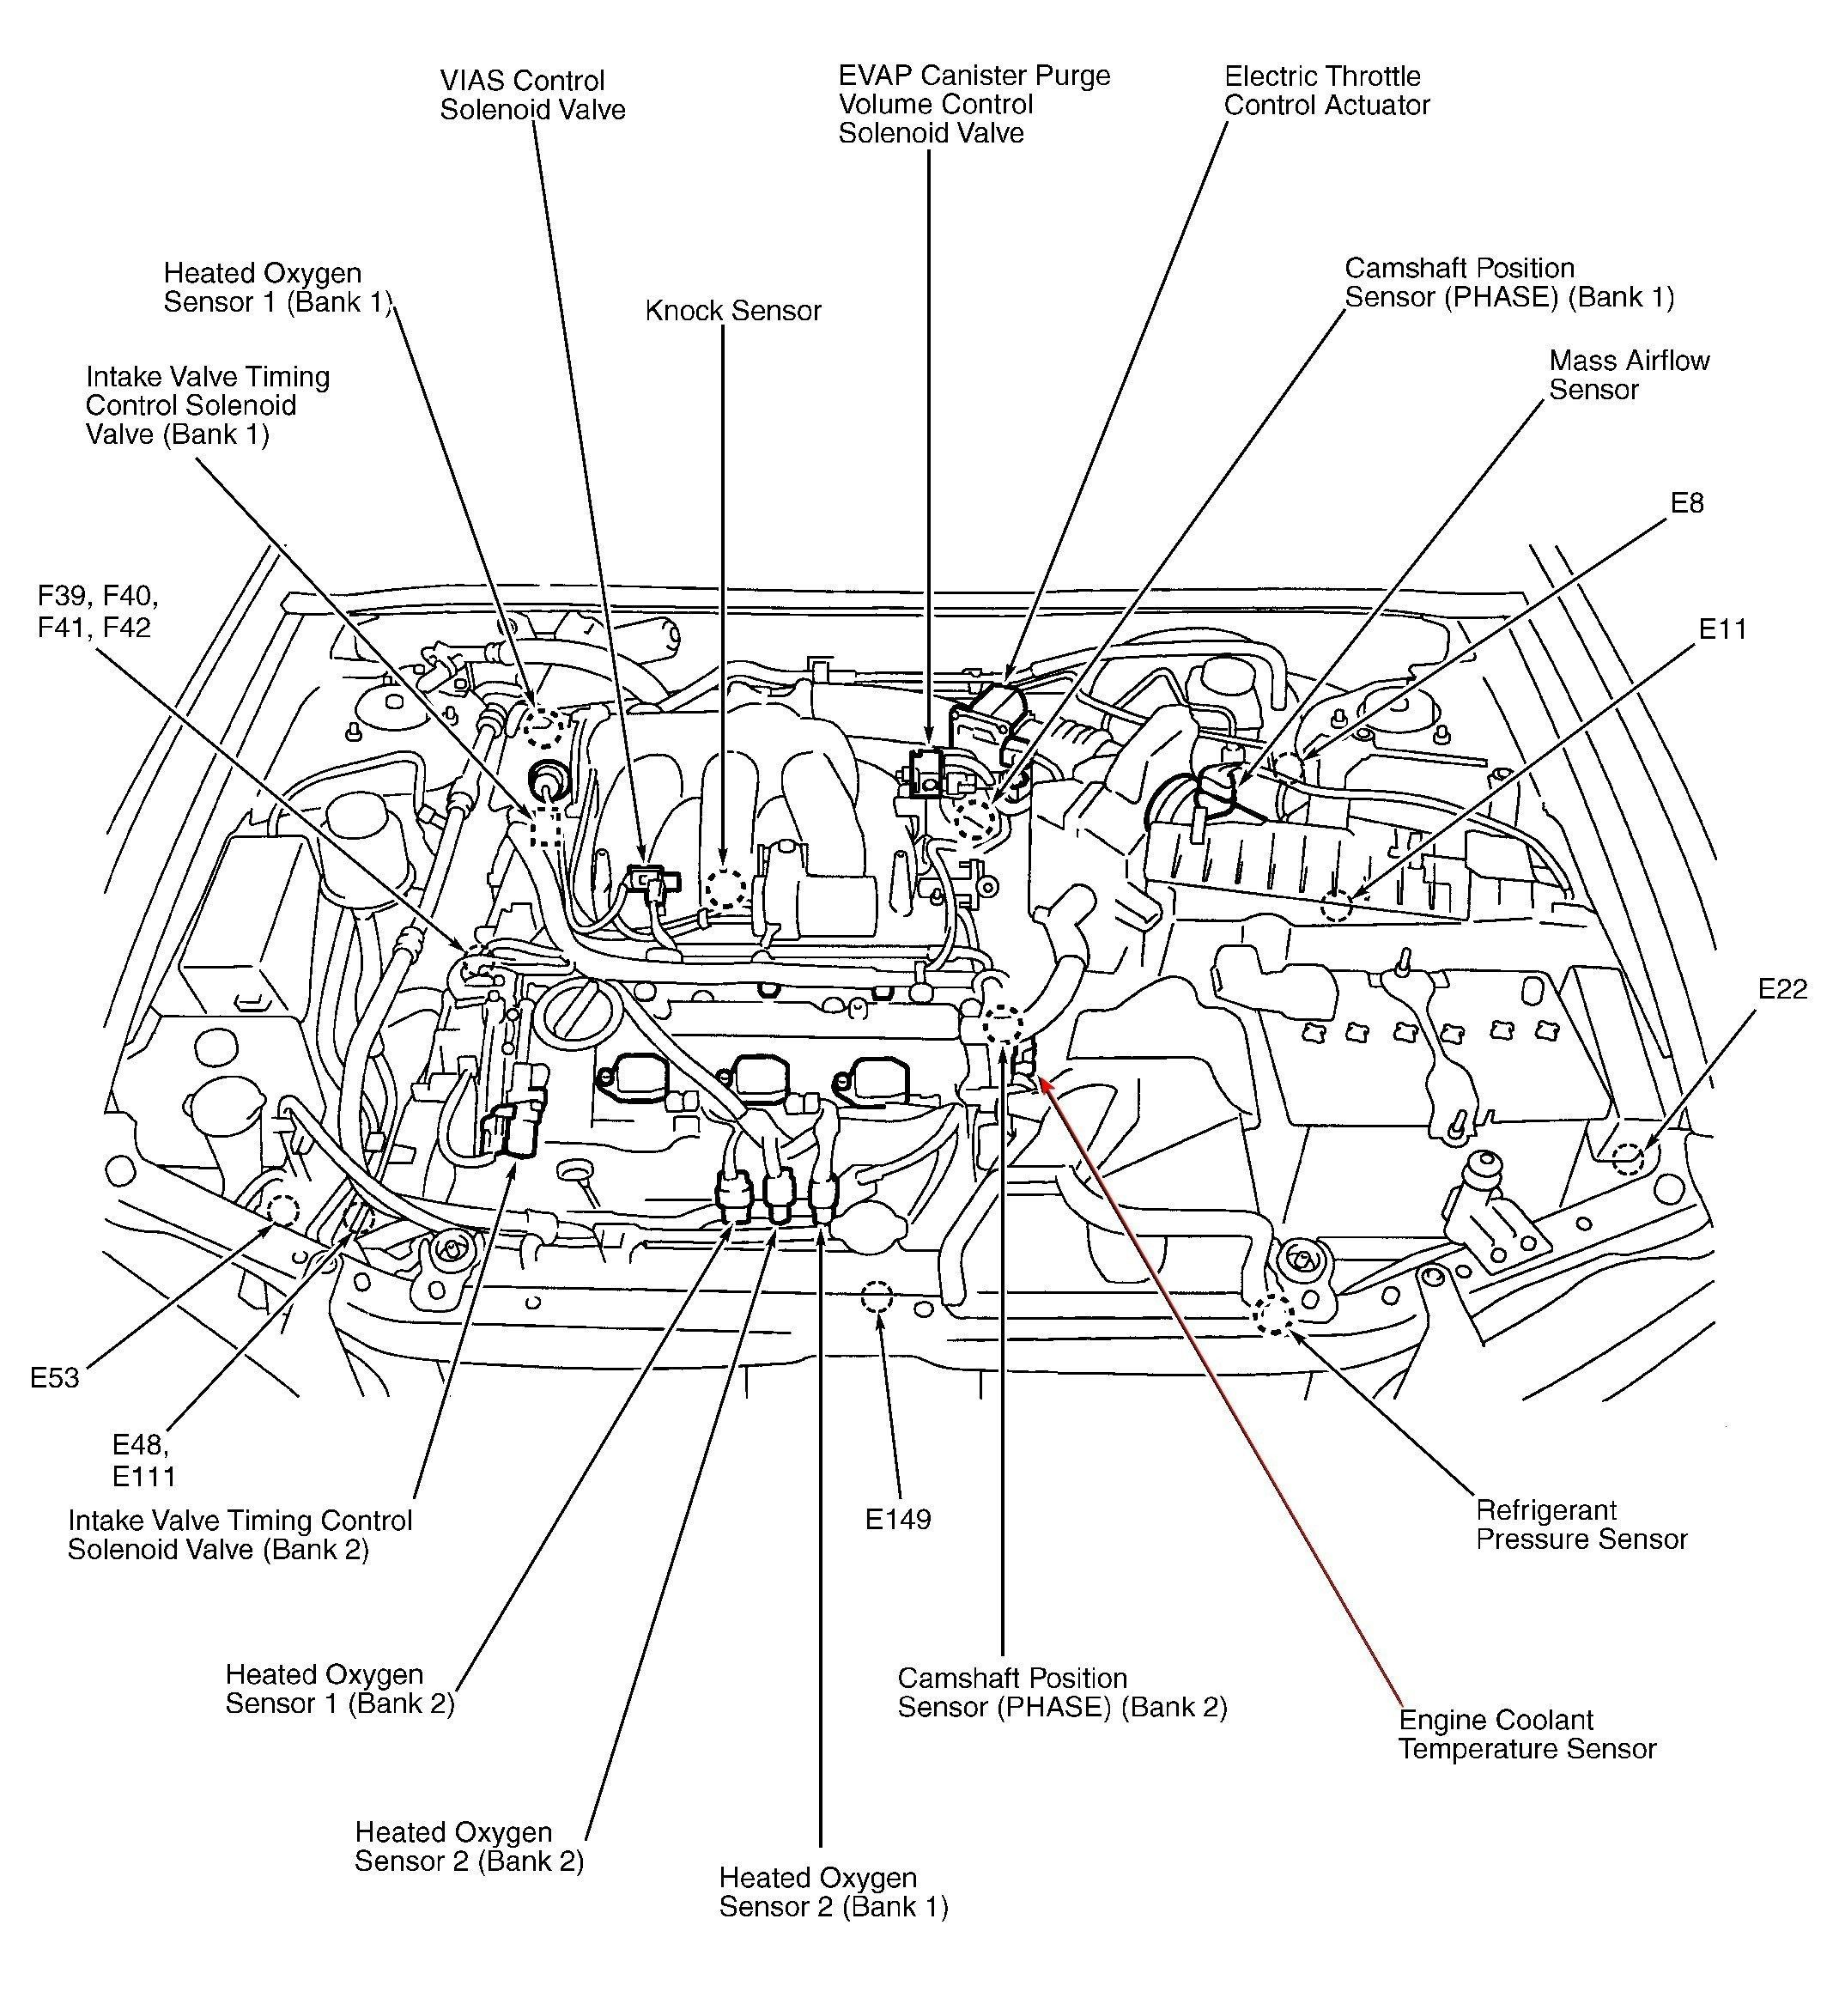 1997 Nissan Pathfinder Engine Diagram Wiring Diagram Query 1997 Nissan Altima Exhaust System Diagram 1997 Nissan In 2020 Nissan Maxima Nissan Xterra Nissan Pathfinder